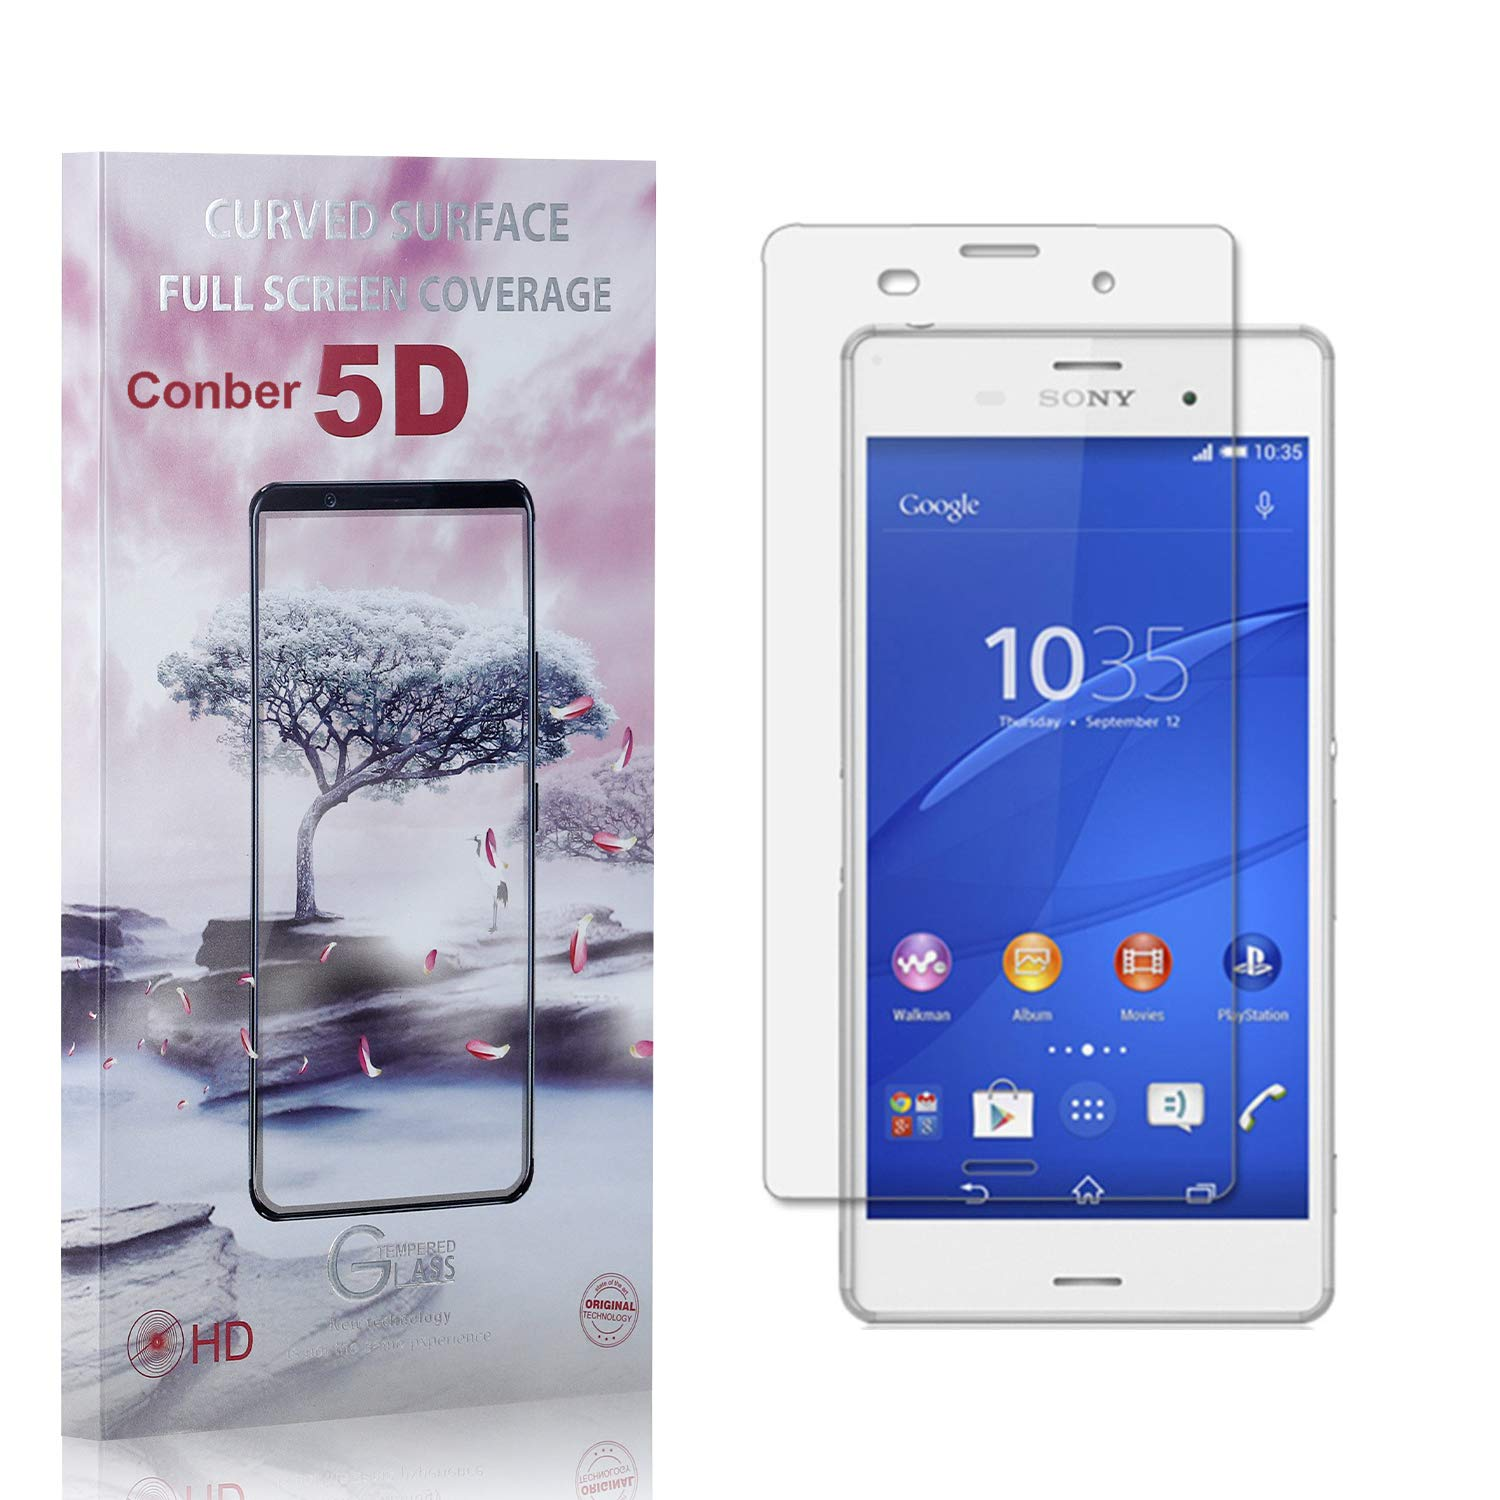 Conber Max 68% OFF 1 Pack Screen Protector Anti-Shatt Z3 At the price for Sony Xperia